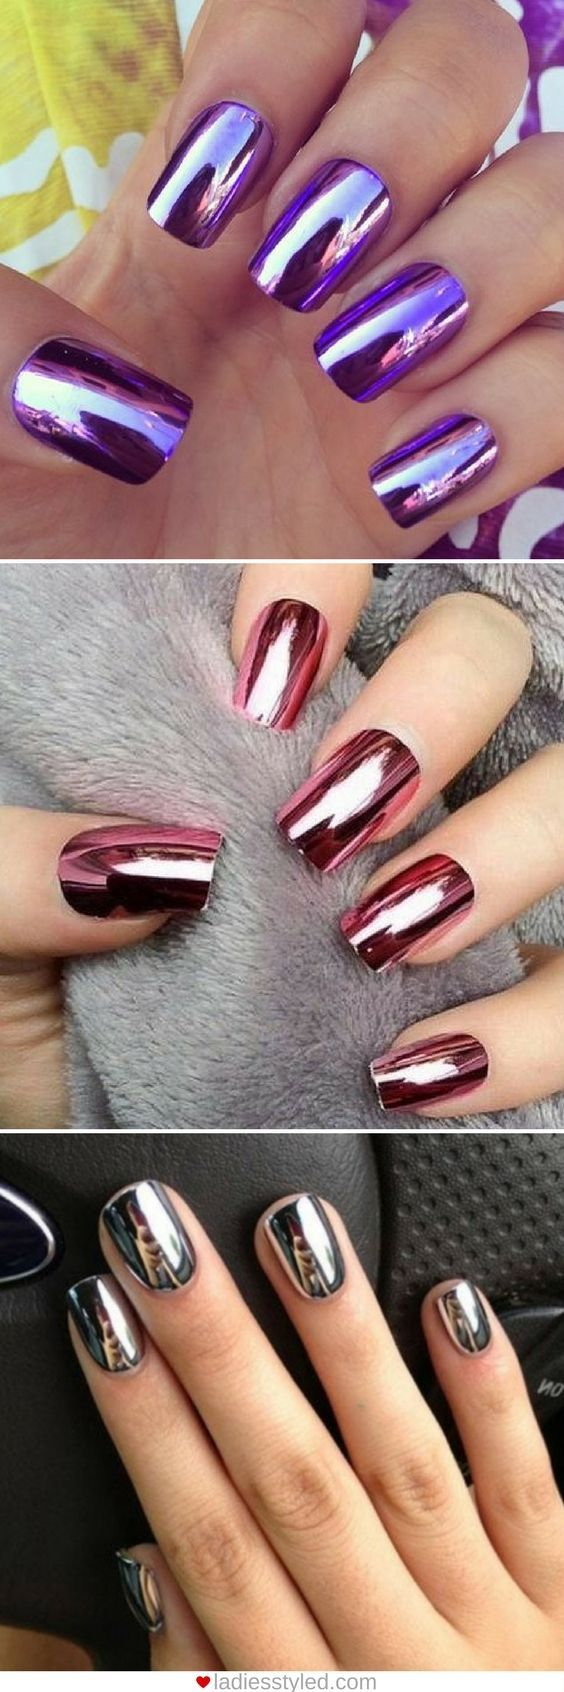 Need some nail art inspiration? browse these beautiful nail art designs and get inspired! #nails